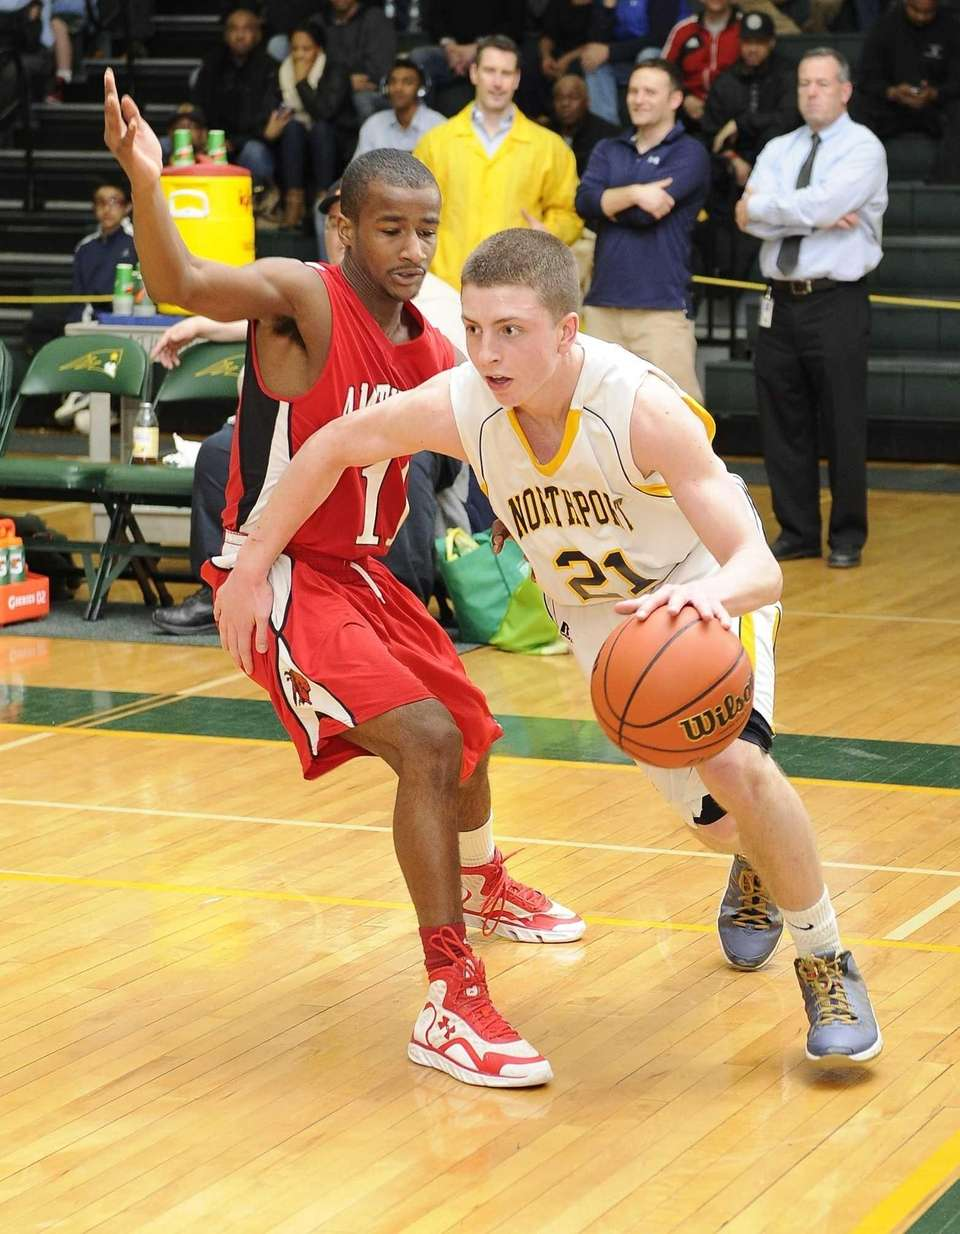 Northport's Austin Marchese drives past Amityville's Sean Walters